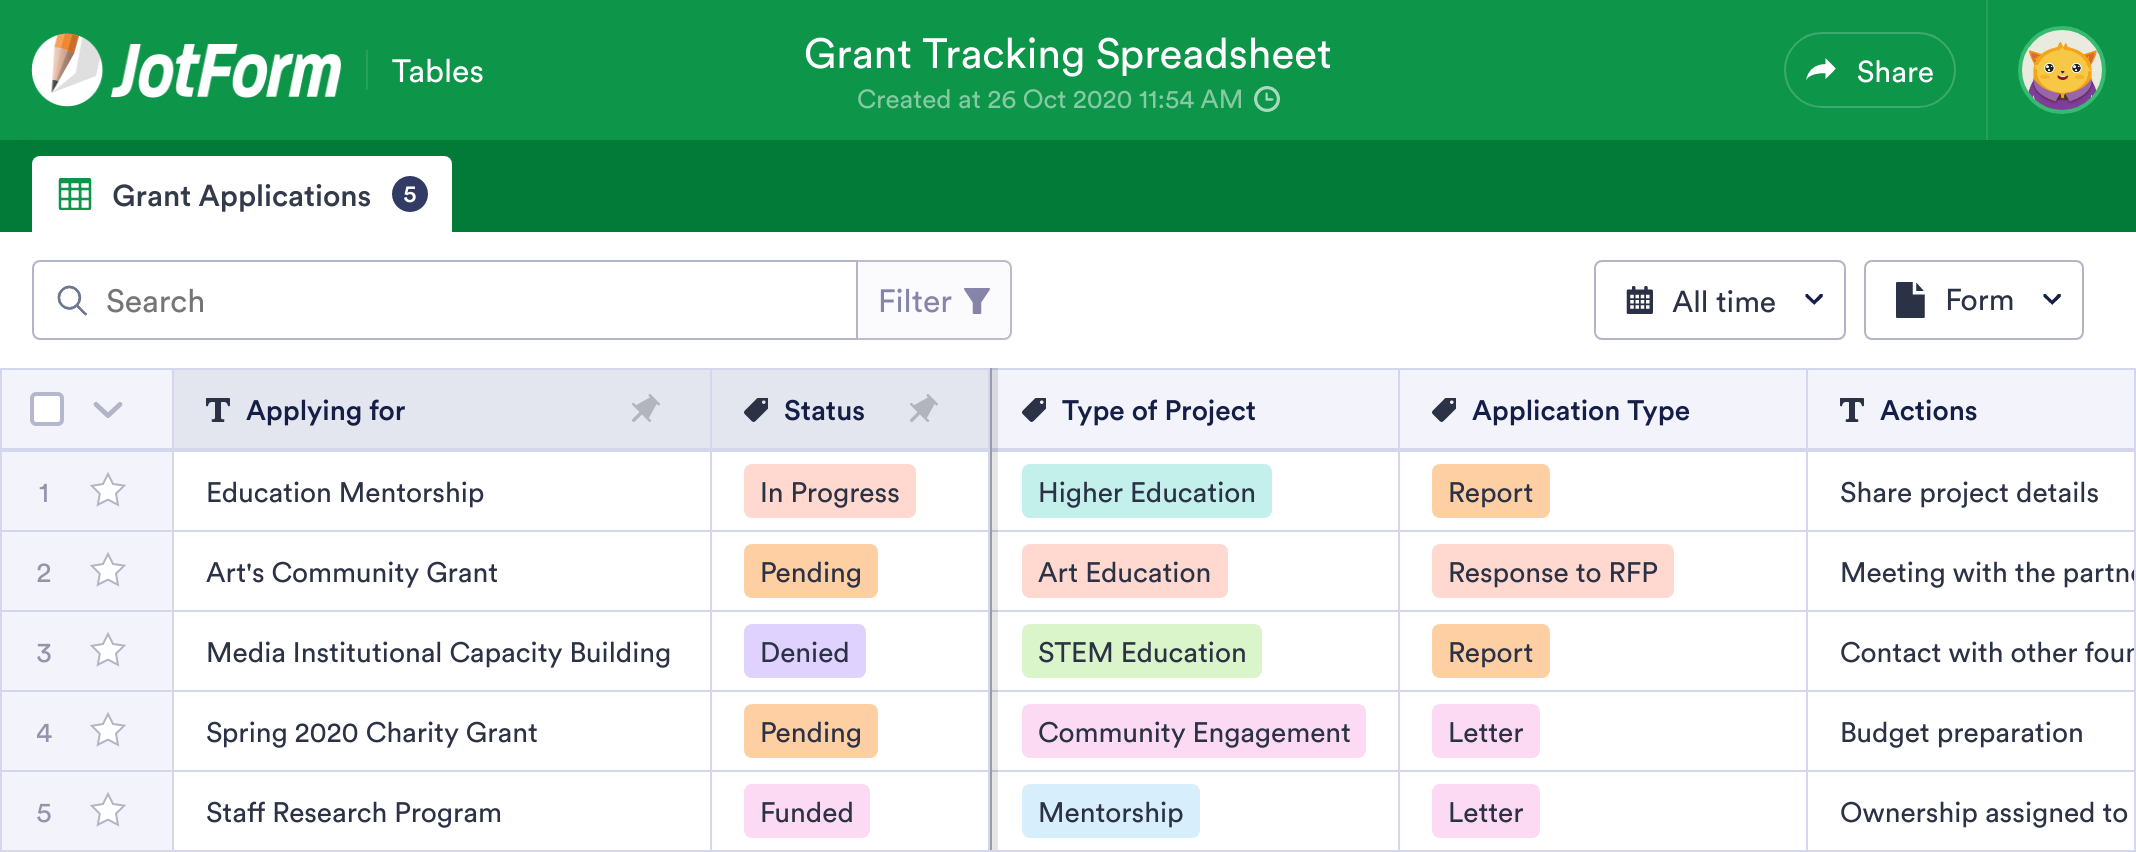 Grant Tracking Spreadsheet